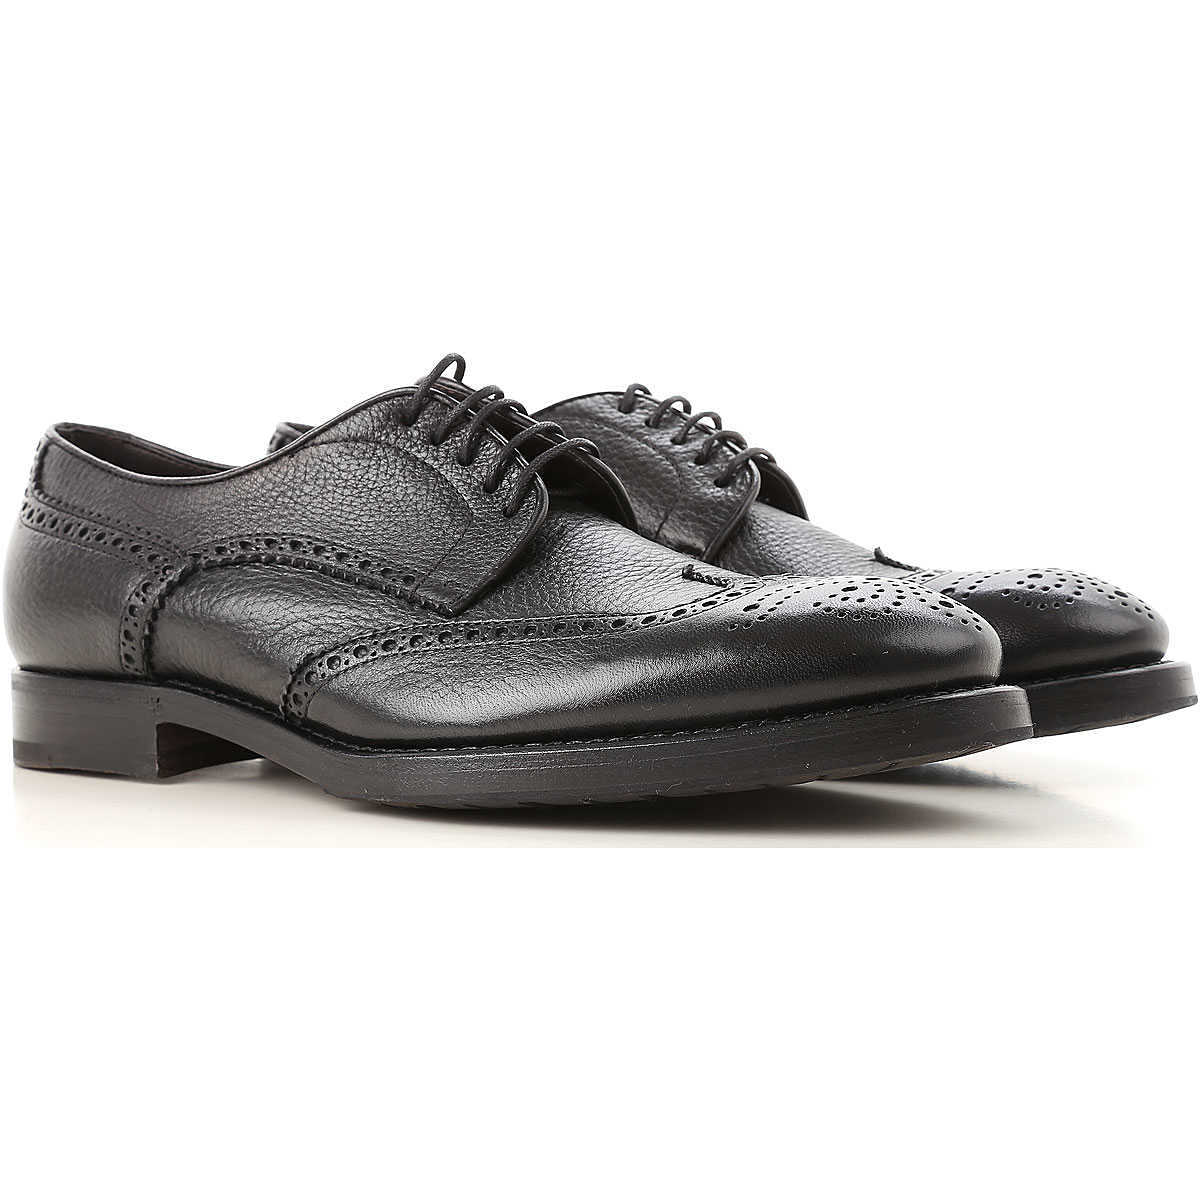 Henderson Lace Up Shoes for Men Oxfords 6 6.5 7 7.5 8 Derbies and Brogues On Sale UK - GOOFASH